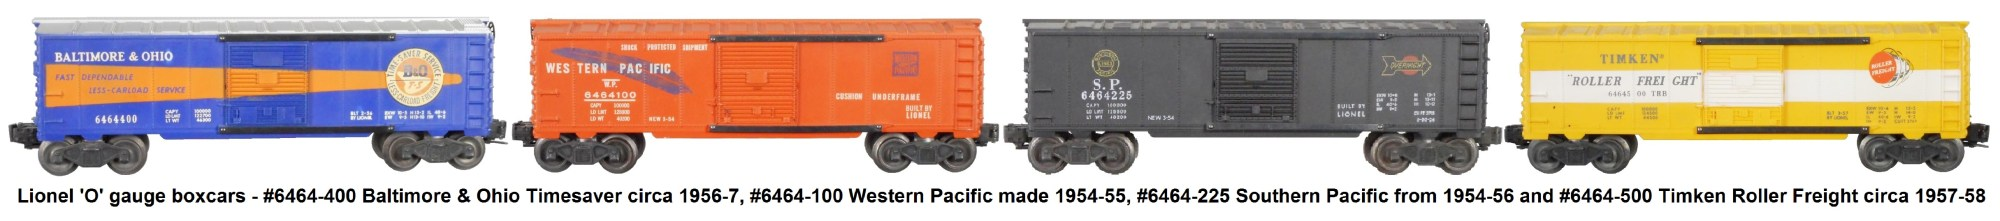 hight resolution of lionel 6464 series box cars from the post war era